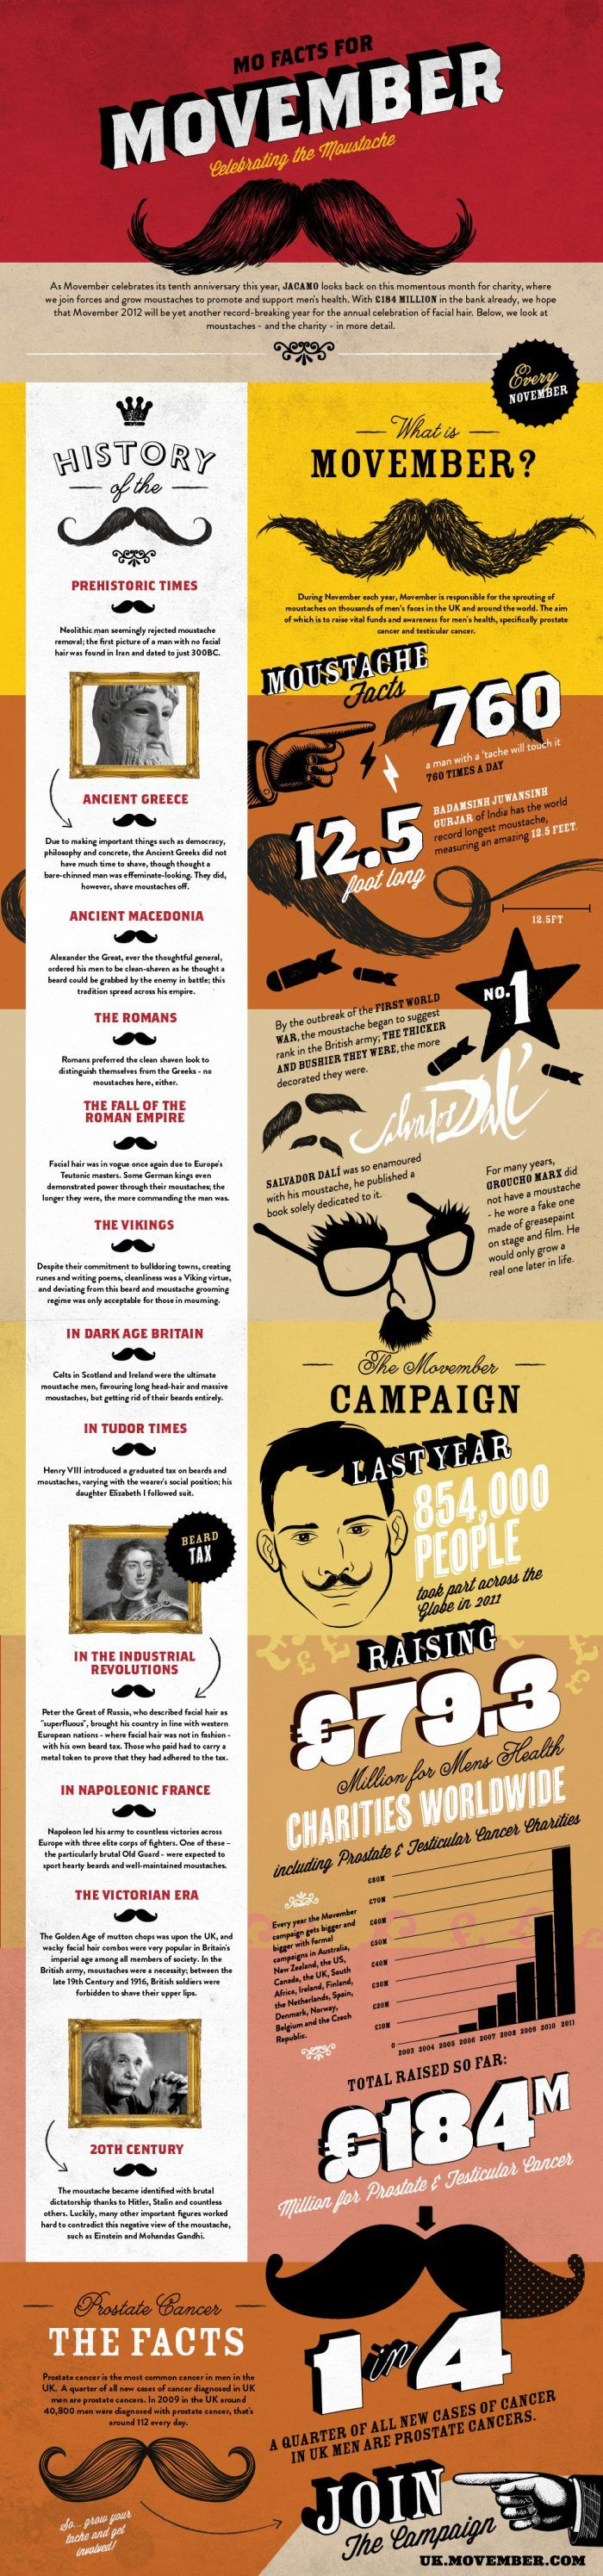 Mo Facts for Movember: Celebrating the Moustache  [by Jacamo -- via #tipsographic]. More at tipsographic.com